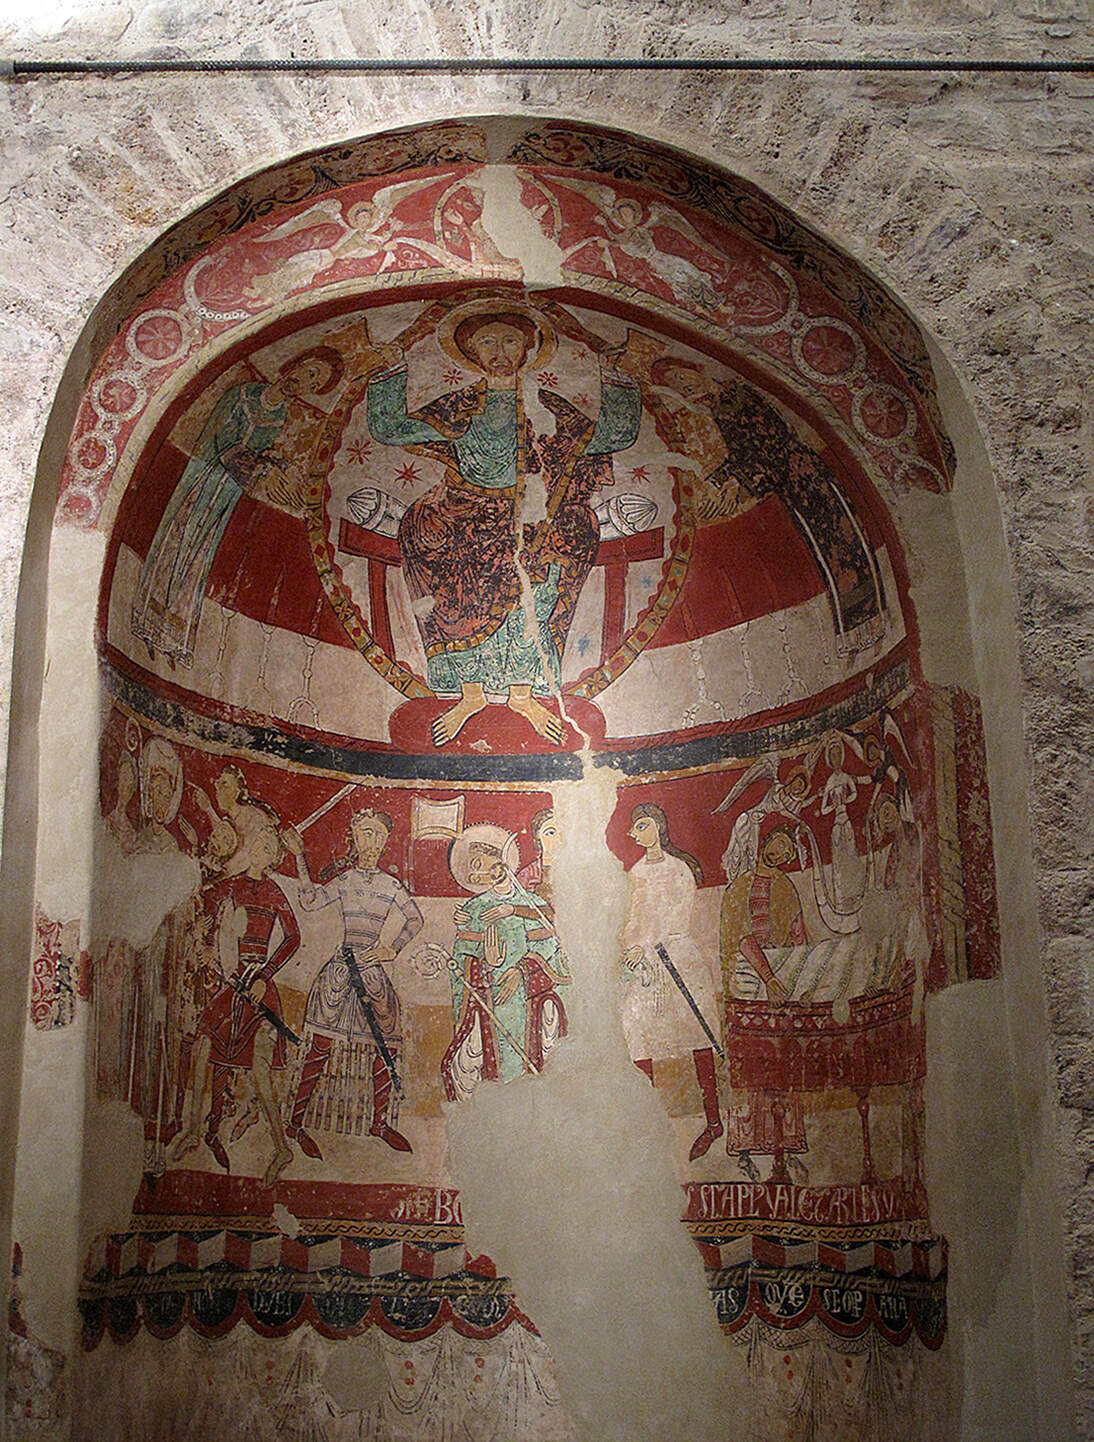 St Thomas Becket's consecration, death and burial wall paintings in Santa Maria de Terrassa (Terrassa, Catalonia, Spain), romanesque frescoes, c. 1200.